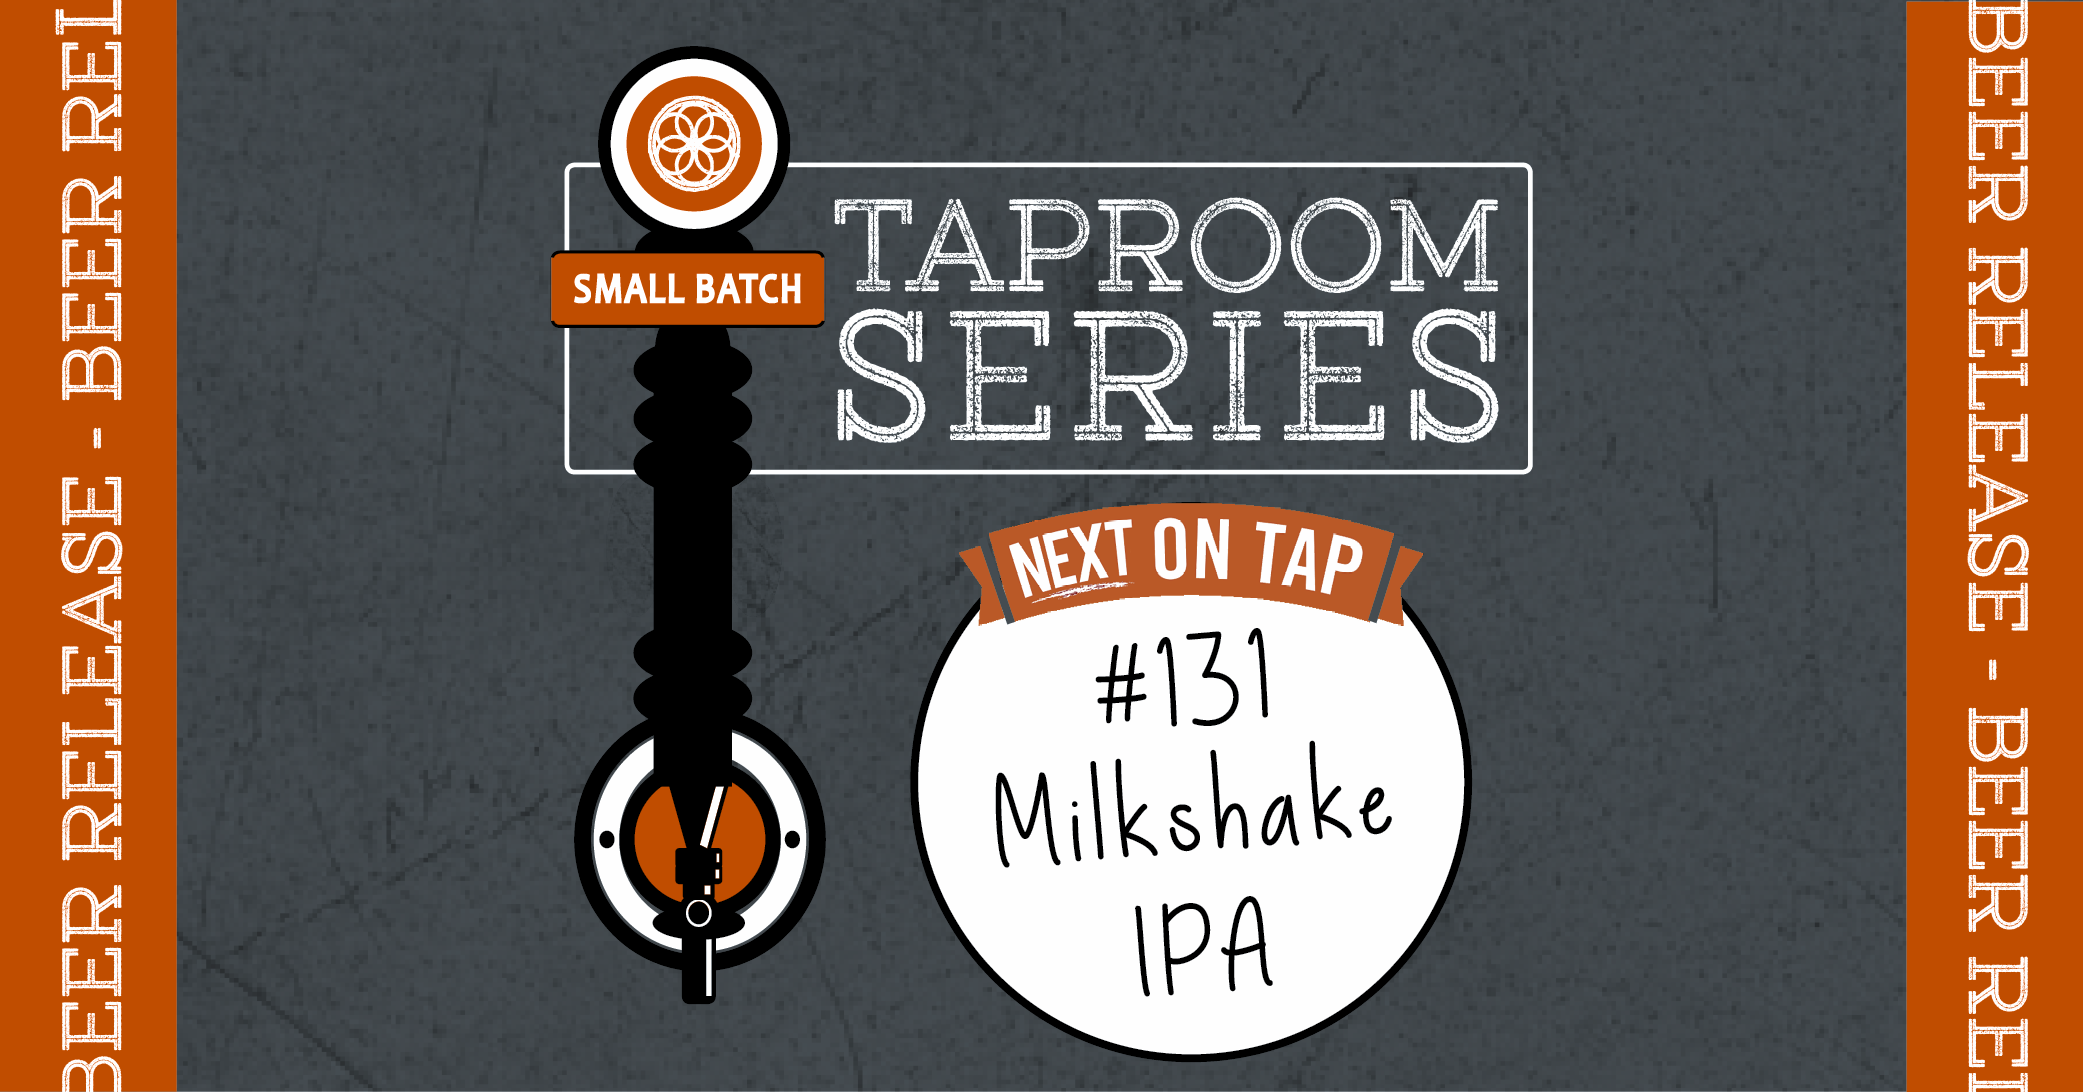 Taproom Series_FB Event Cover_131 Milkshake IPA.png